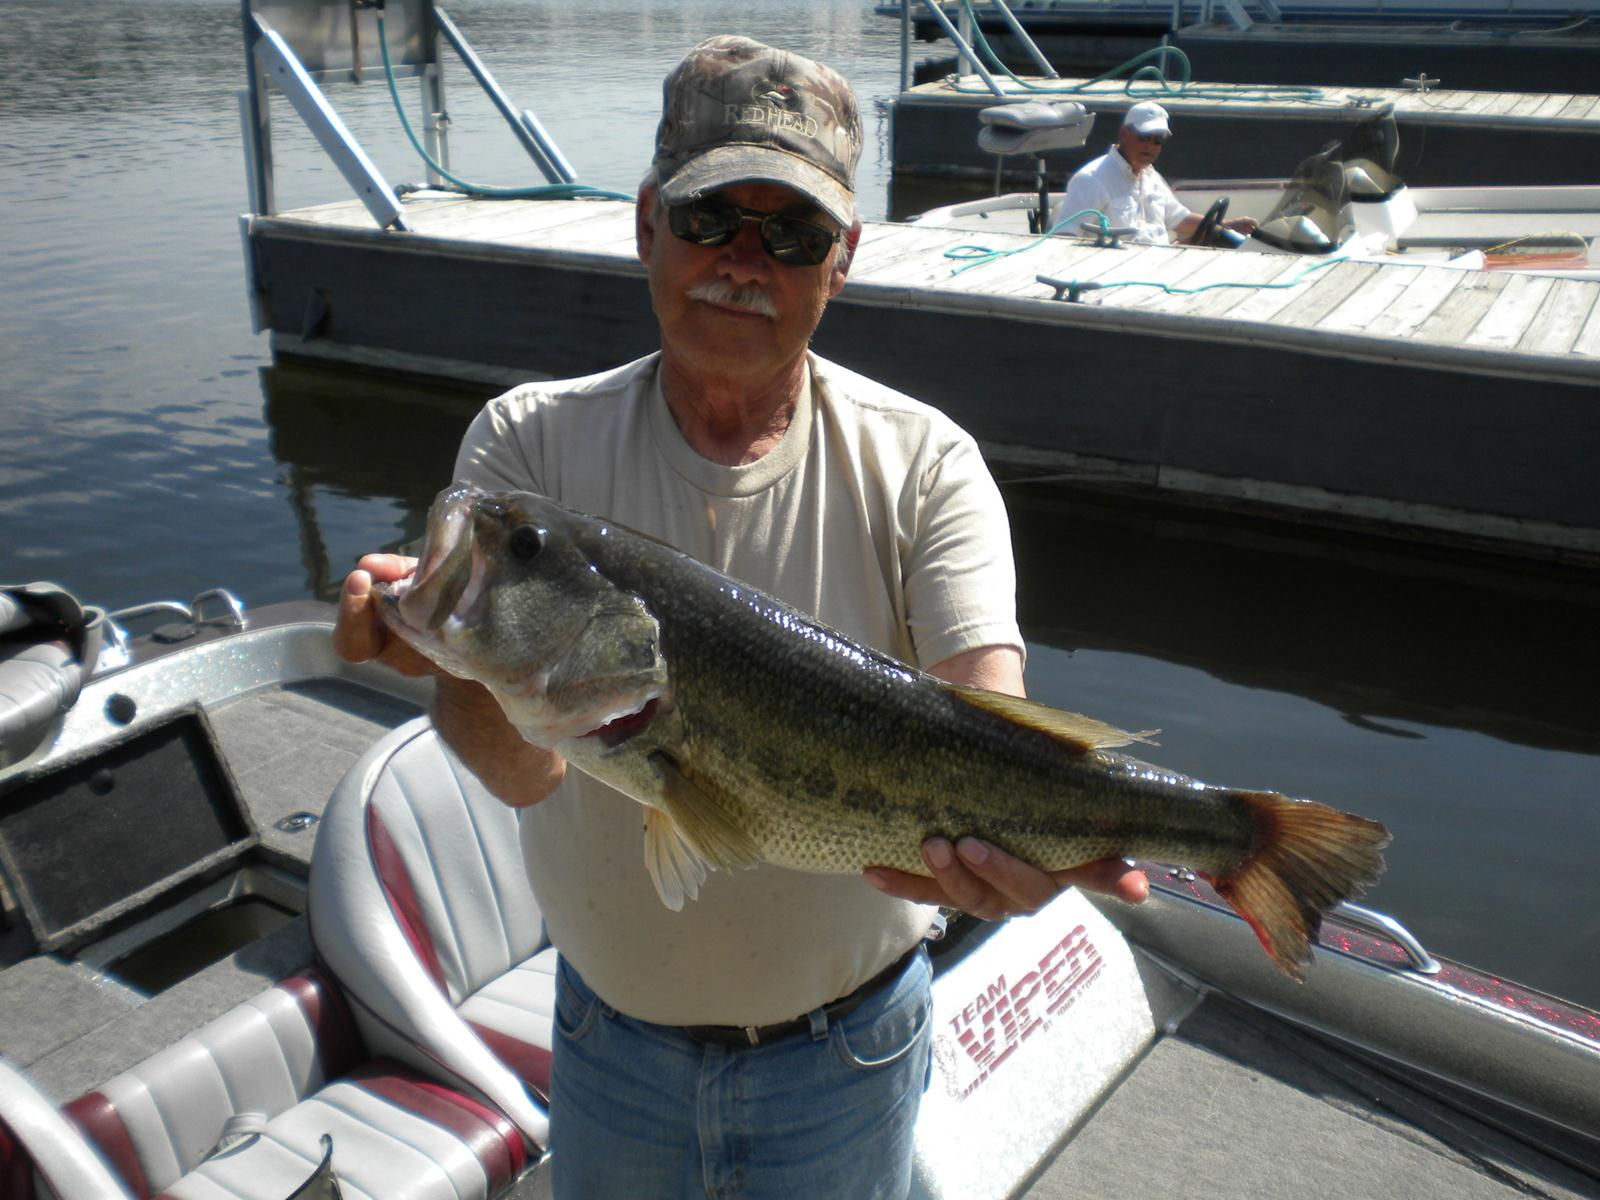 Welcome to pontiac cove marina on beautiful bull shoals for Bull shoals lake fishing report